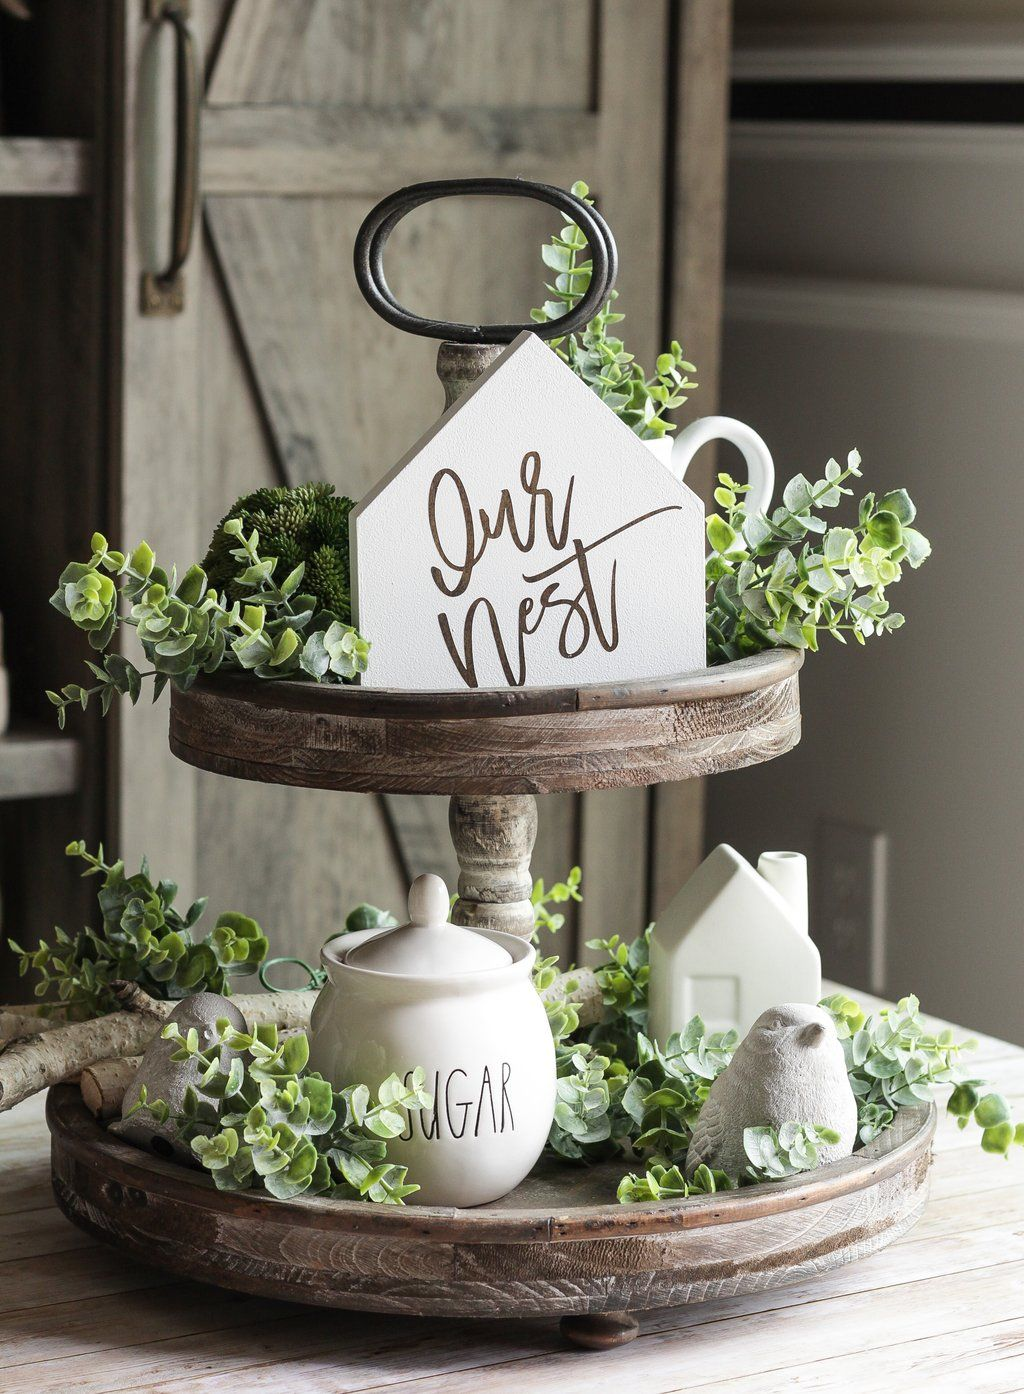 Our Nest Tiered Tray Mini Sign | Rustic Home Decor | Farmhouse Wall Sign #tieredtraydecor